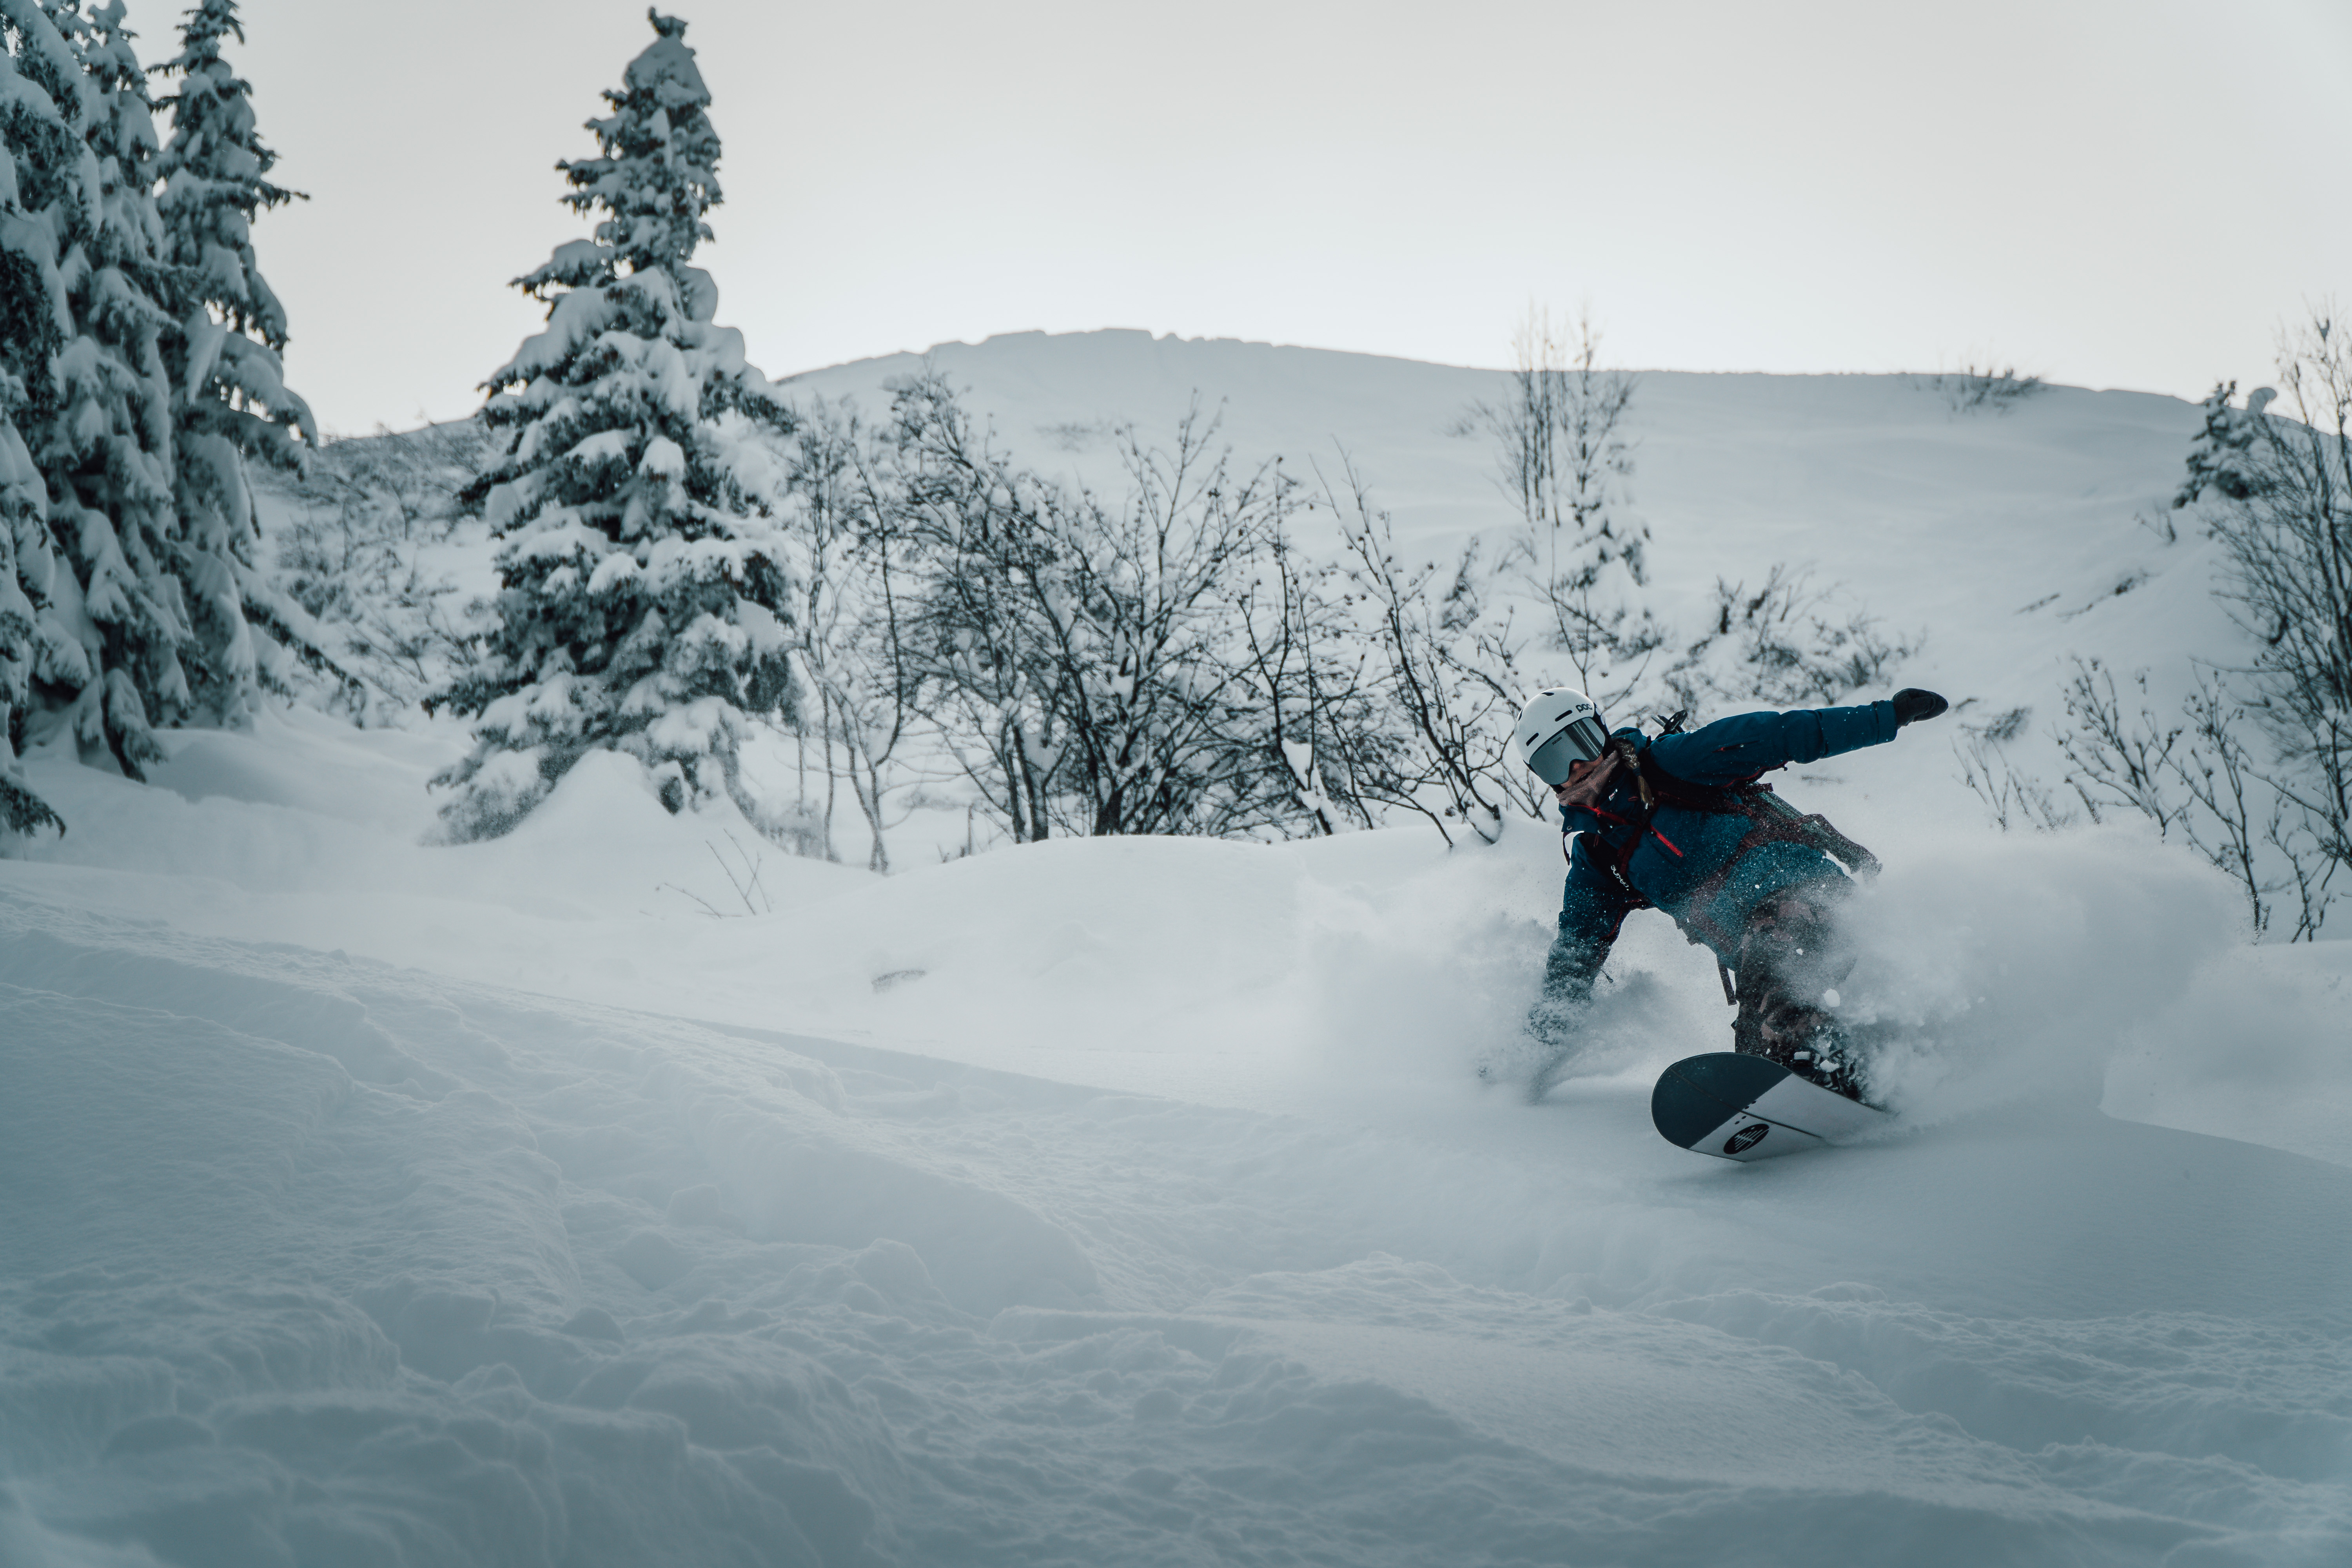 The winter of no lifts by Jack Ashman